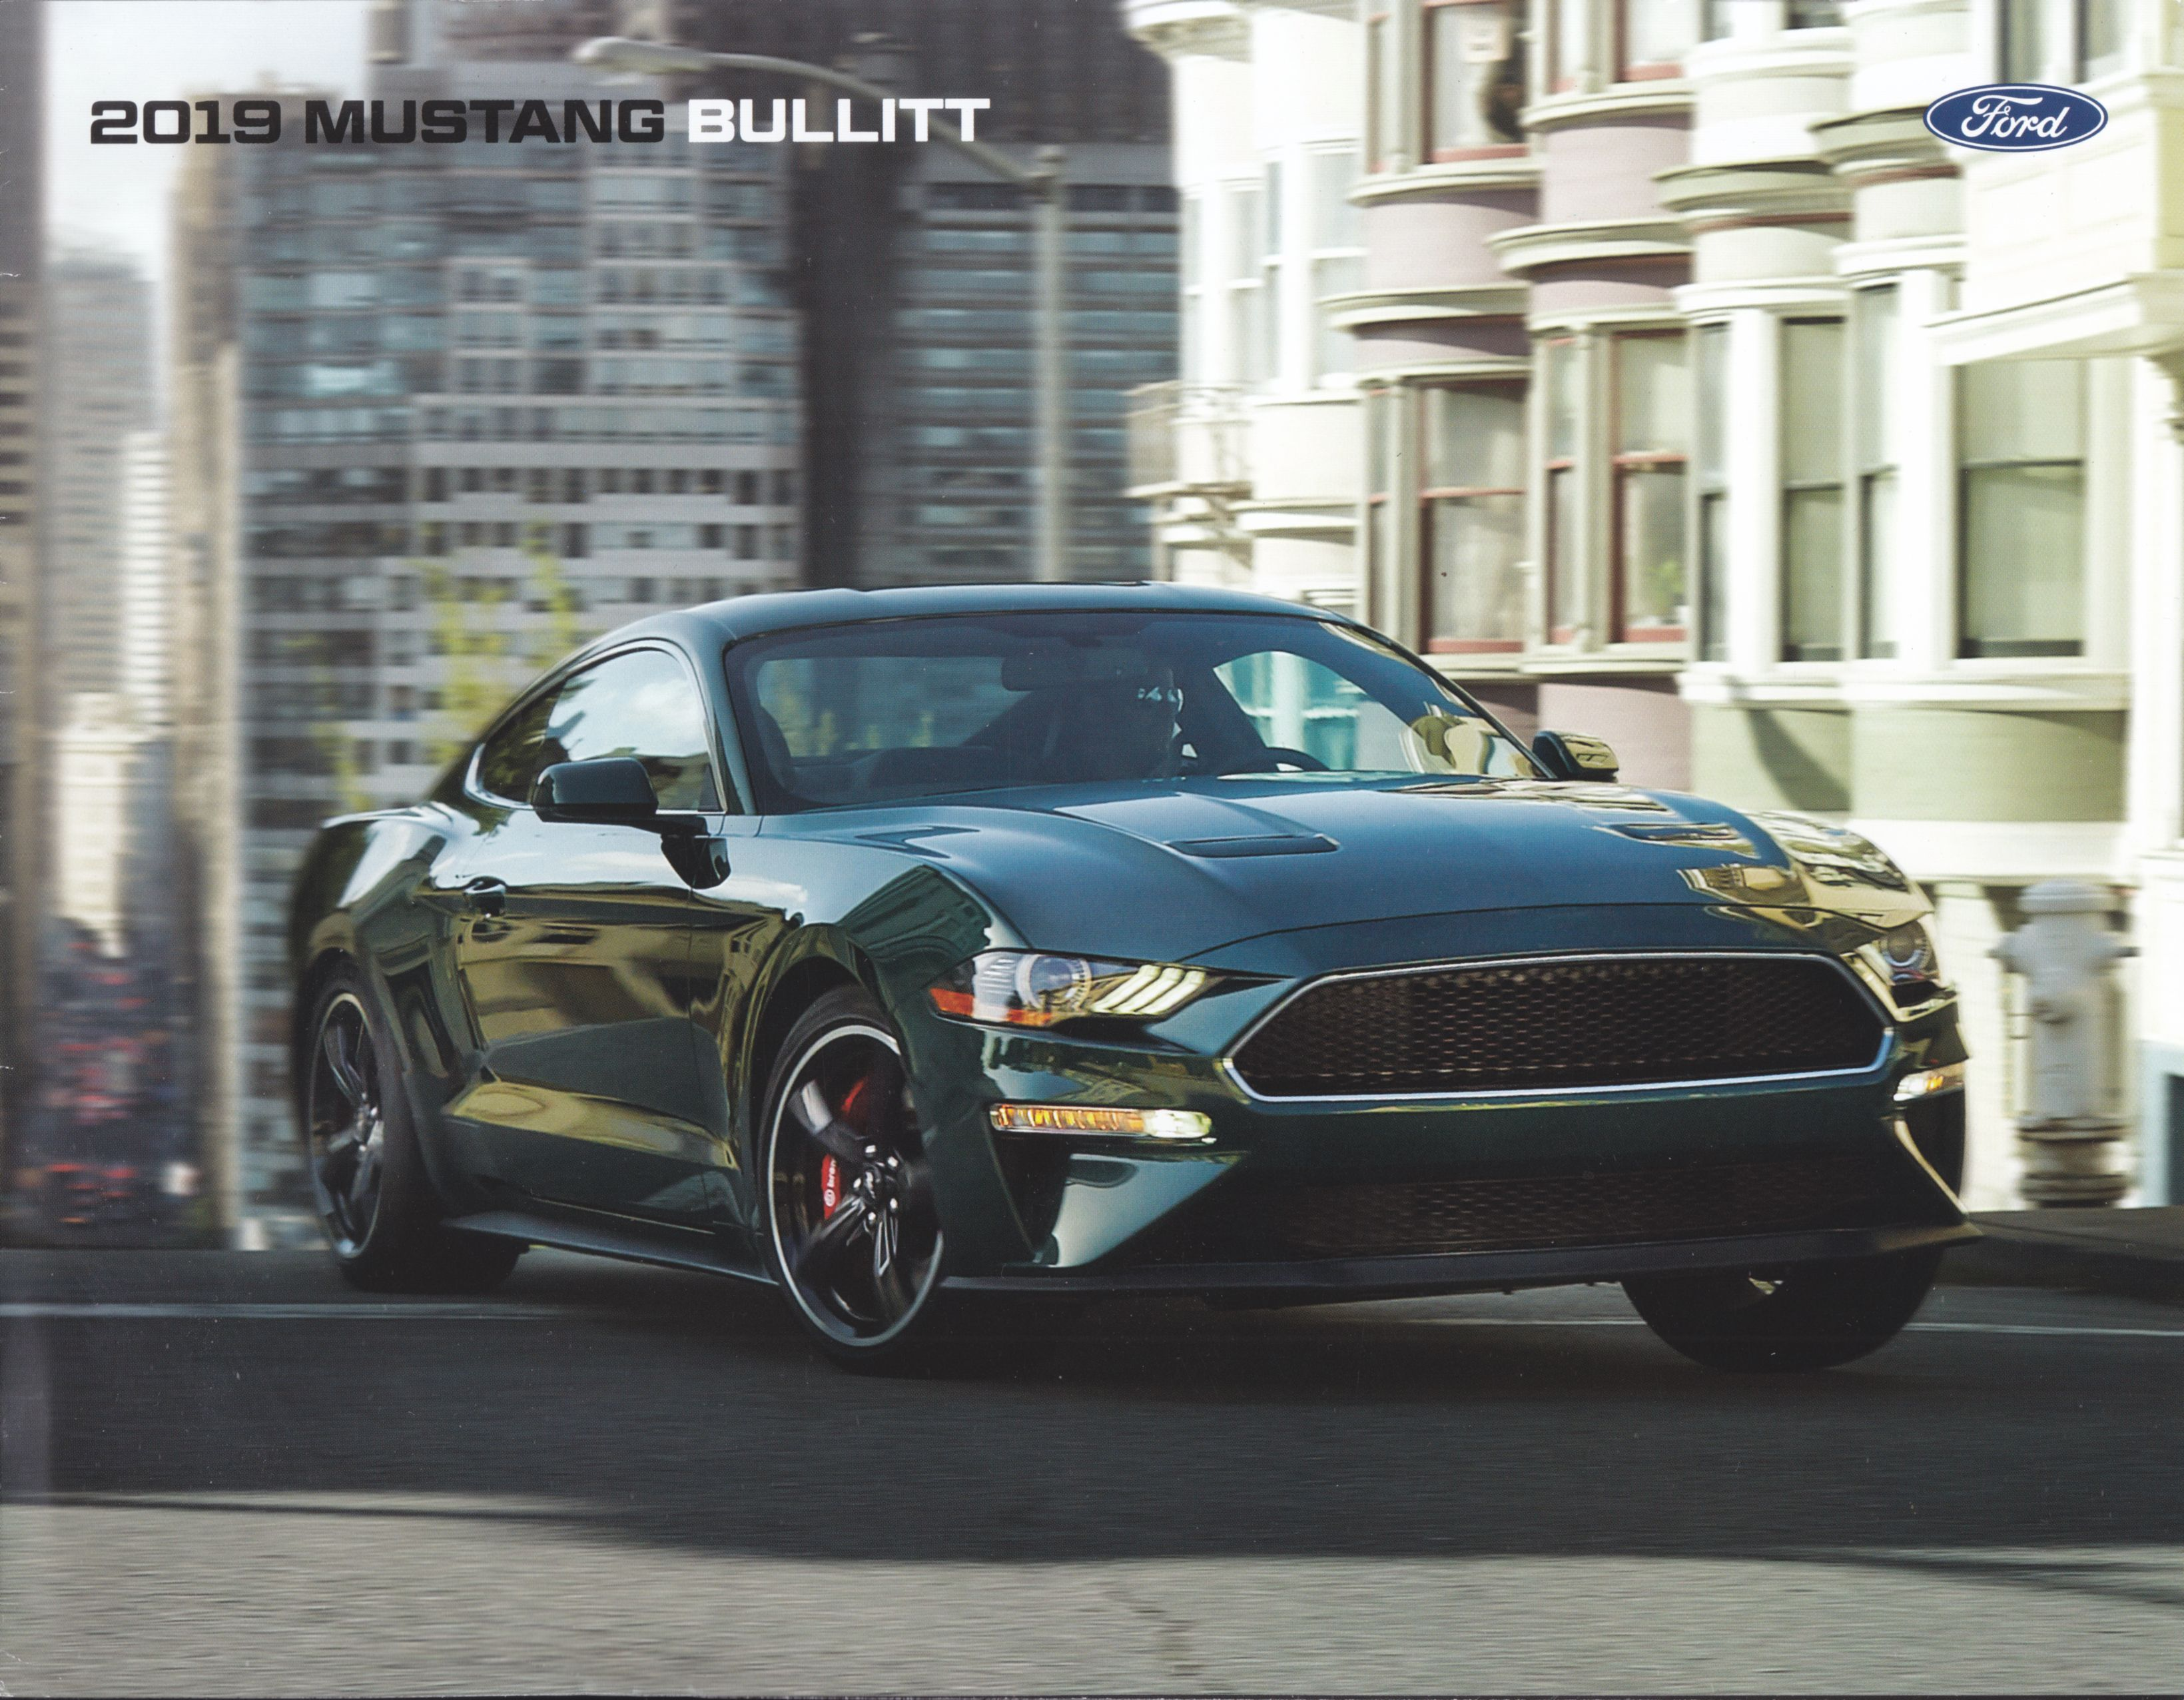 Ford Mustang Bullitt 2019 4 Page Us Sales Brochure